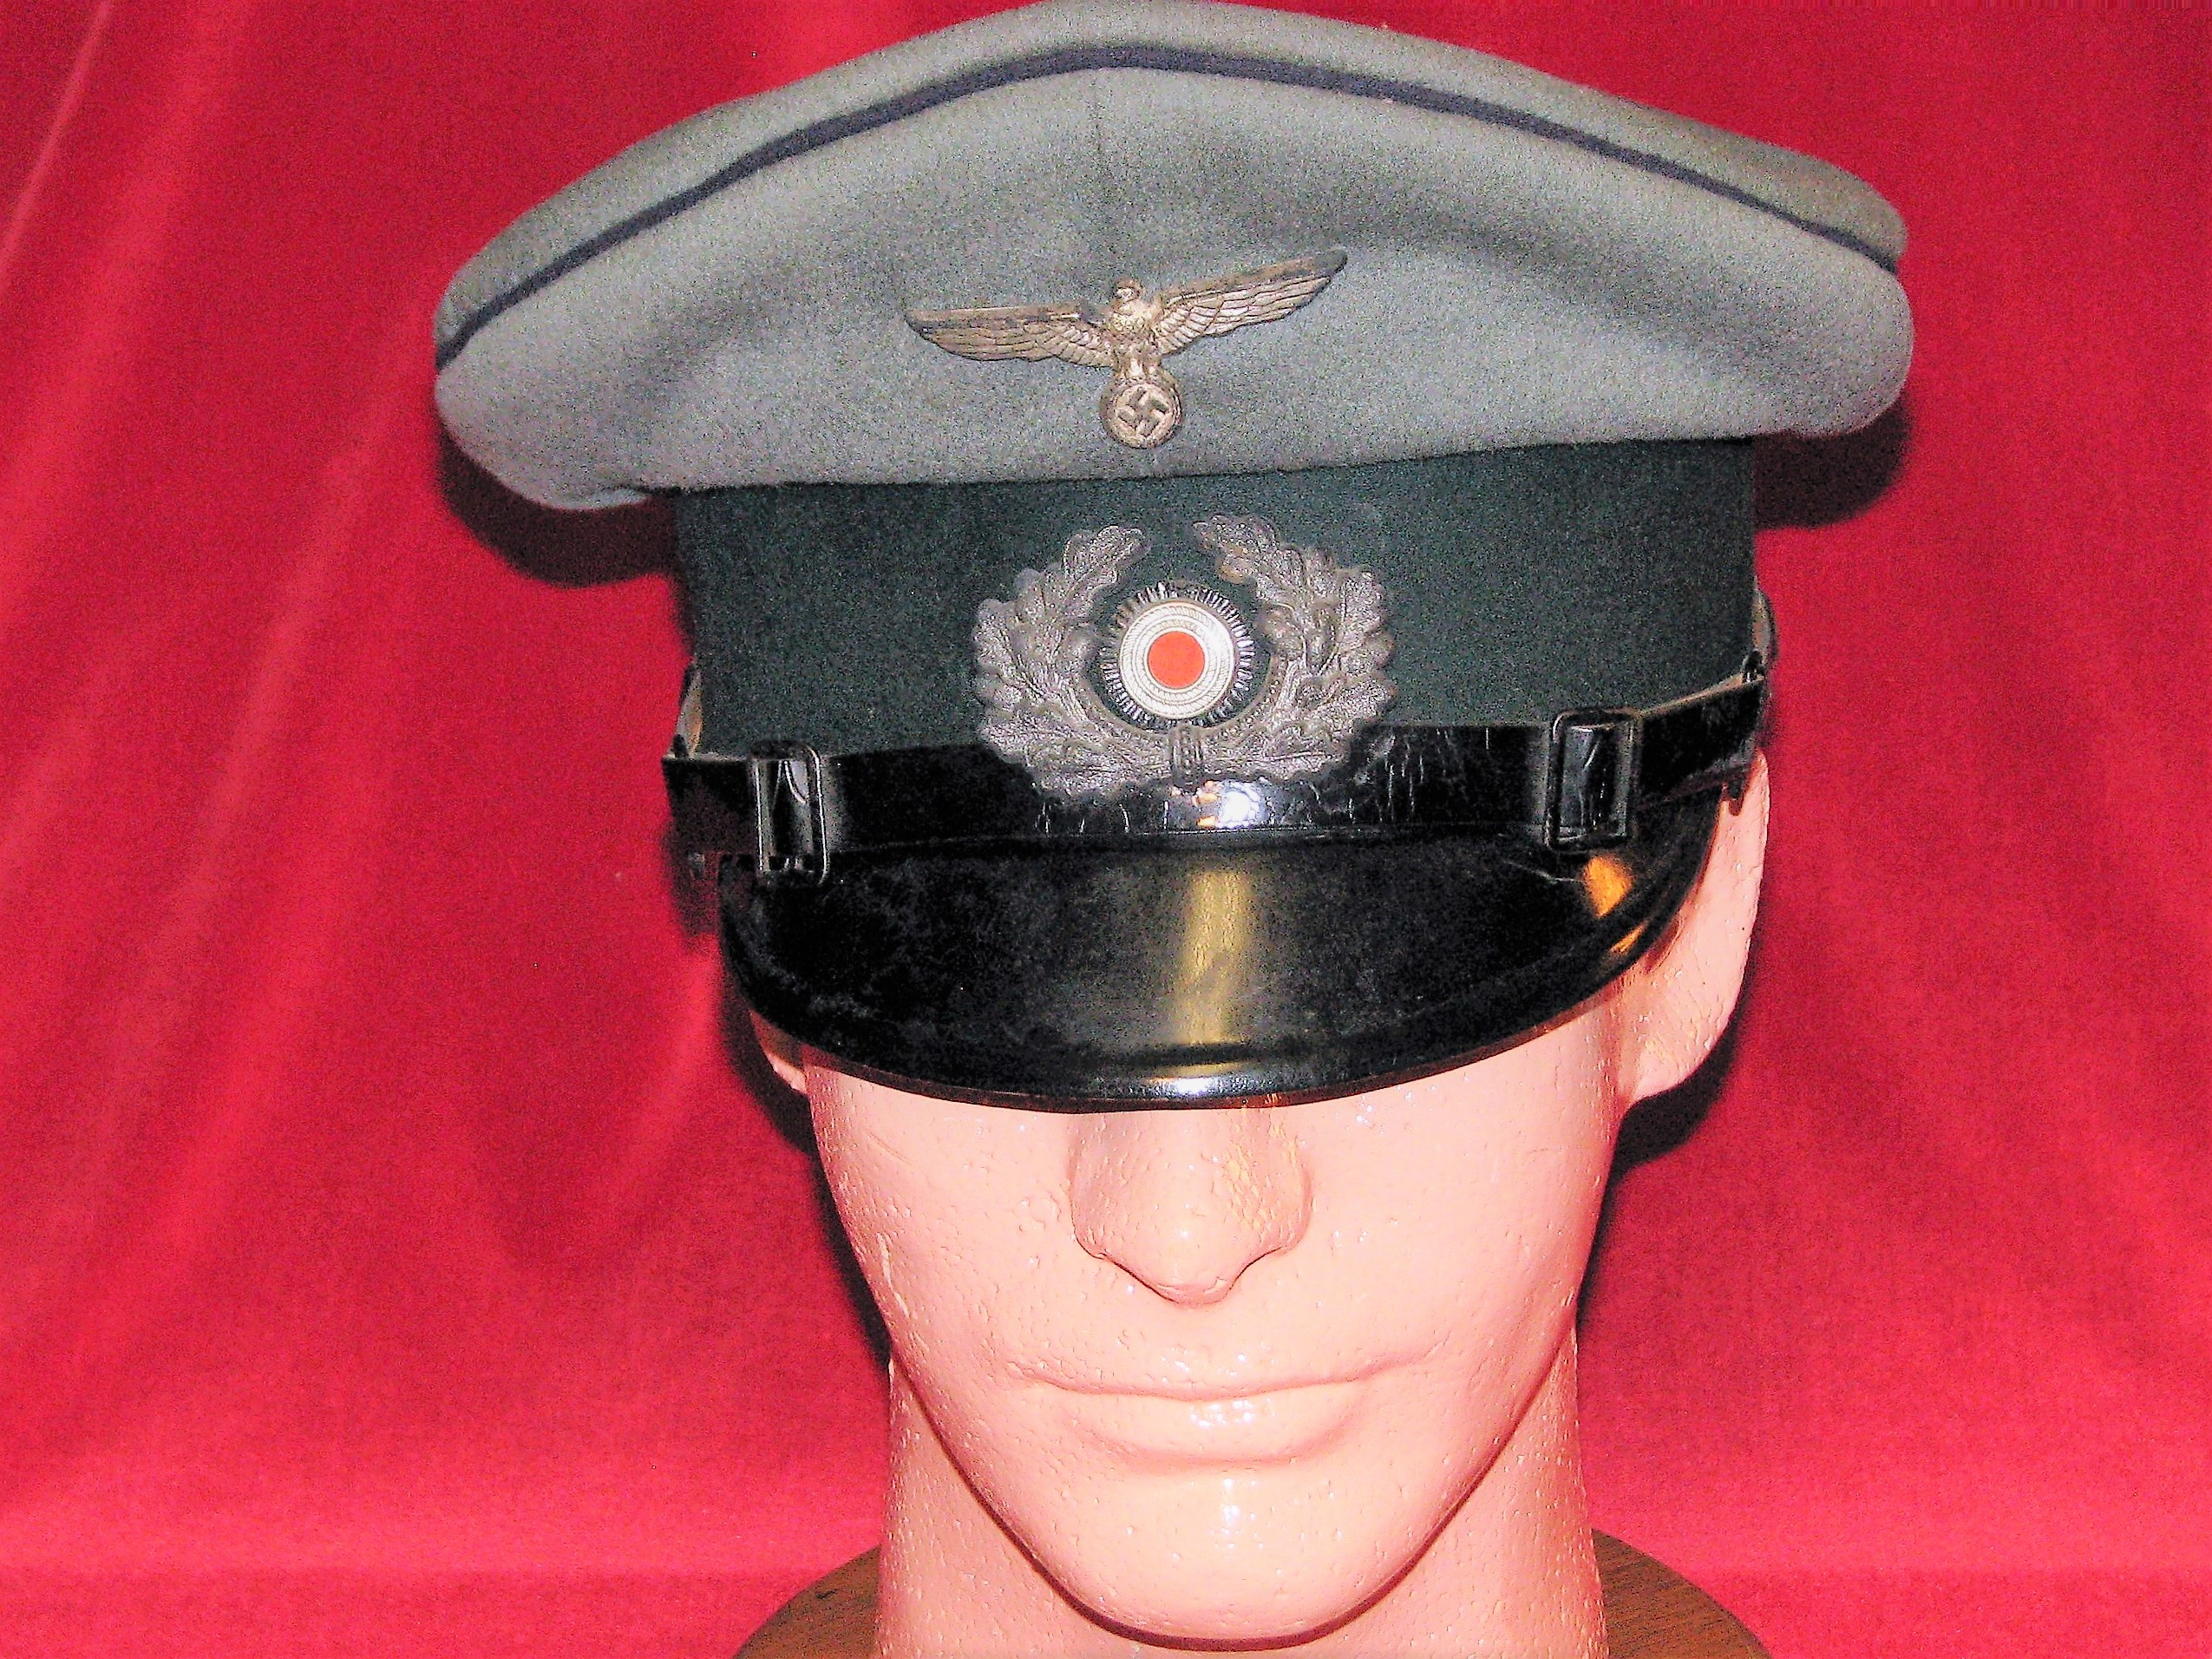 WWII German EM/NCO Medical Visor Hat Blue Piping with 3/Pz. Abw. Markings 17-14